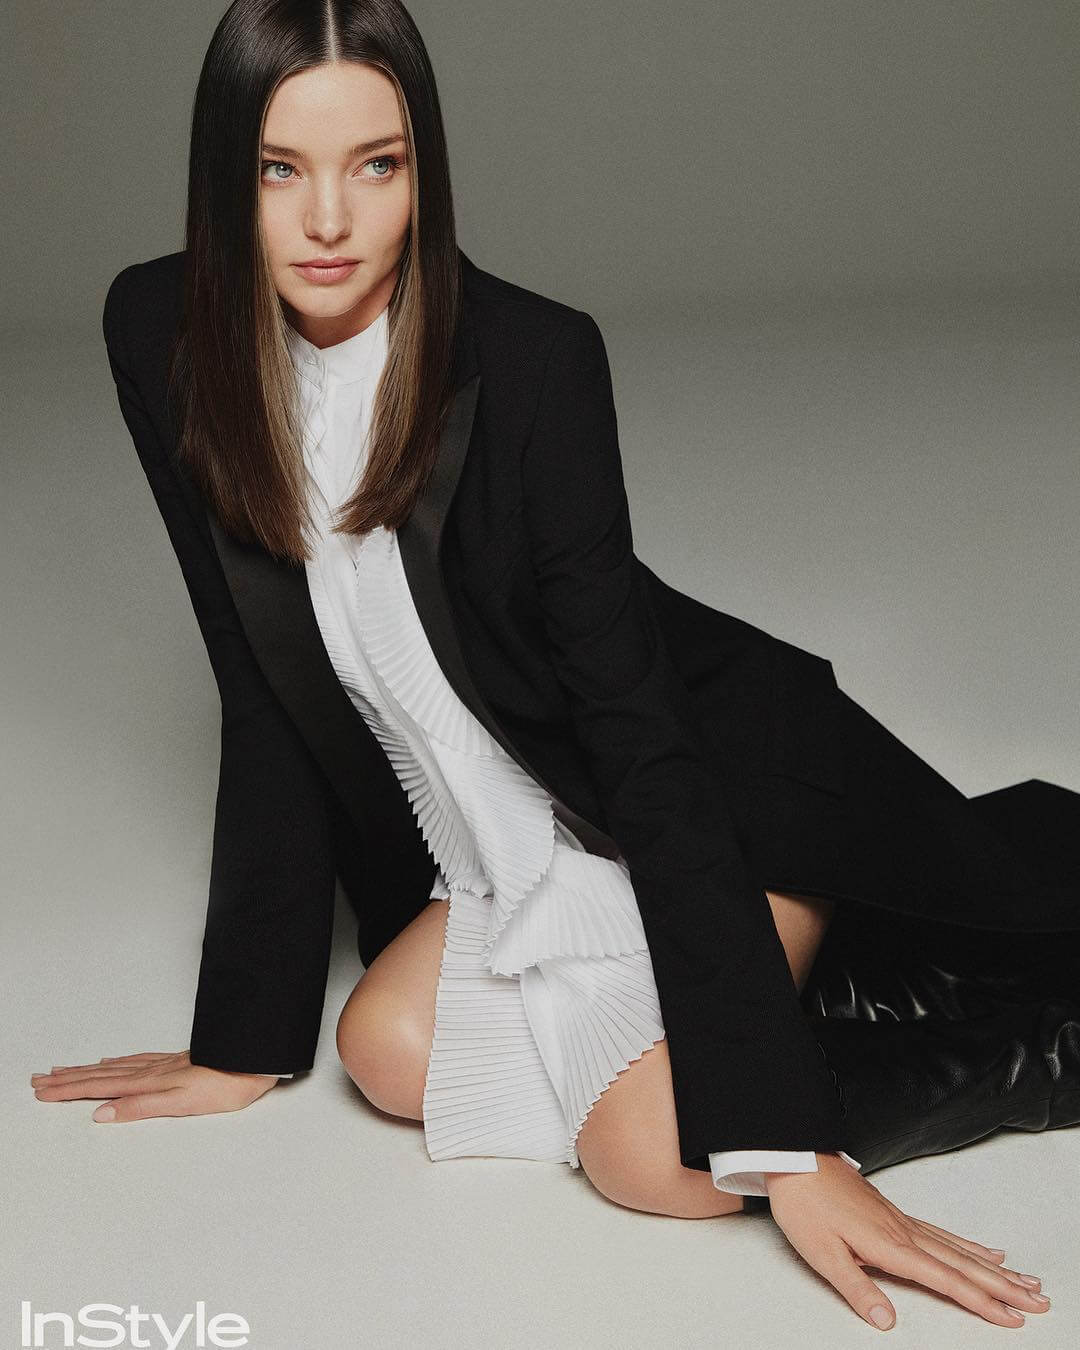 Miranda Kerr Photoshoot for InStyle China Magazine, December 2018 1